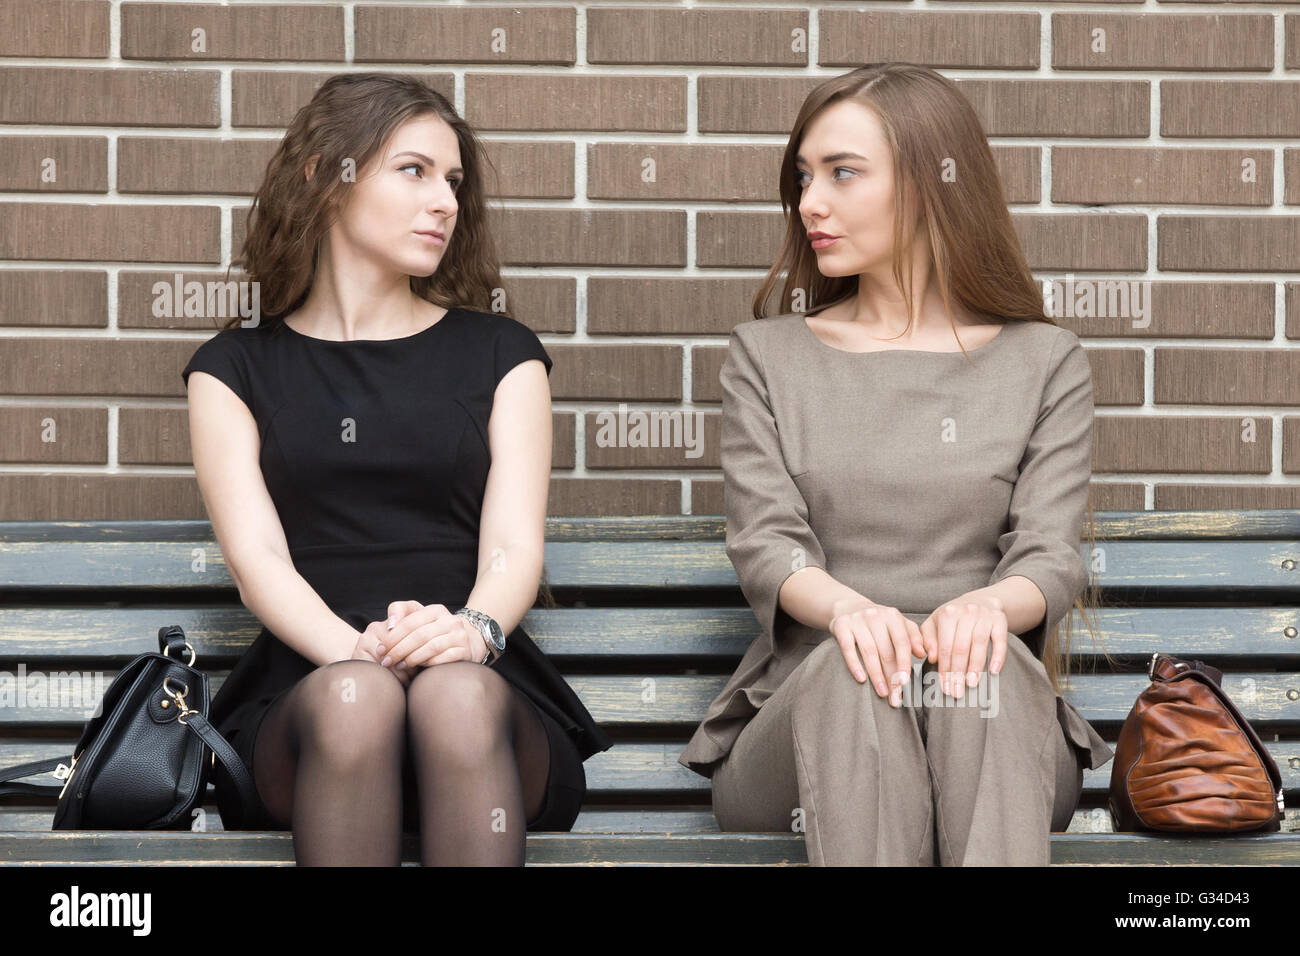 Portrait of two beautiful young female rivals sitting side by side on bench and looking at each other with challenging - Stock Image